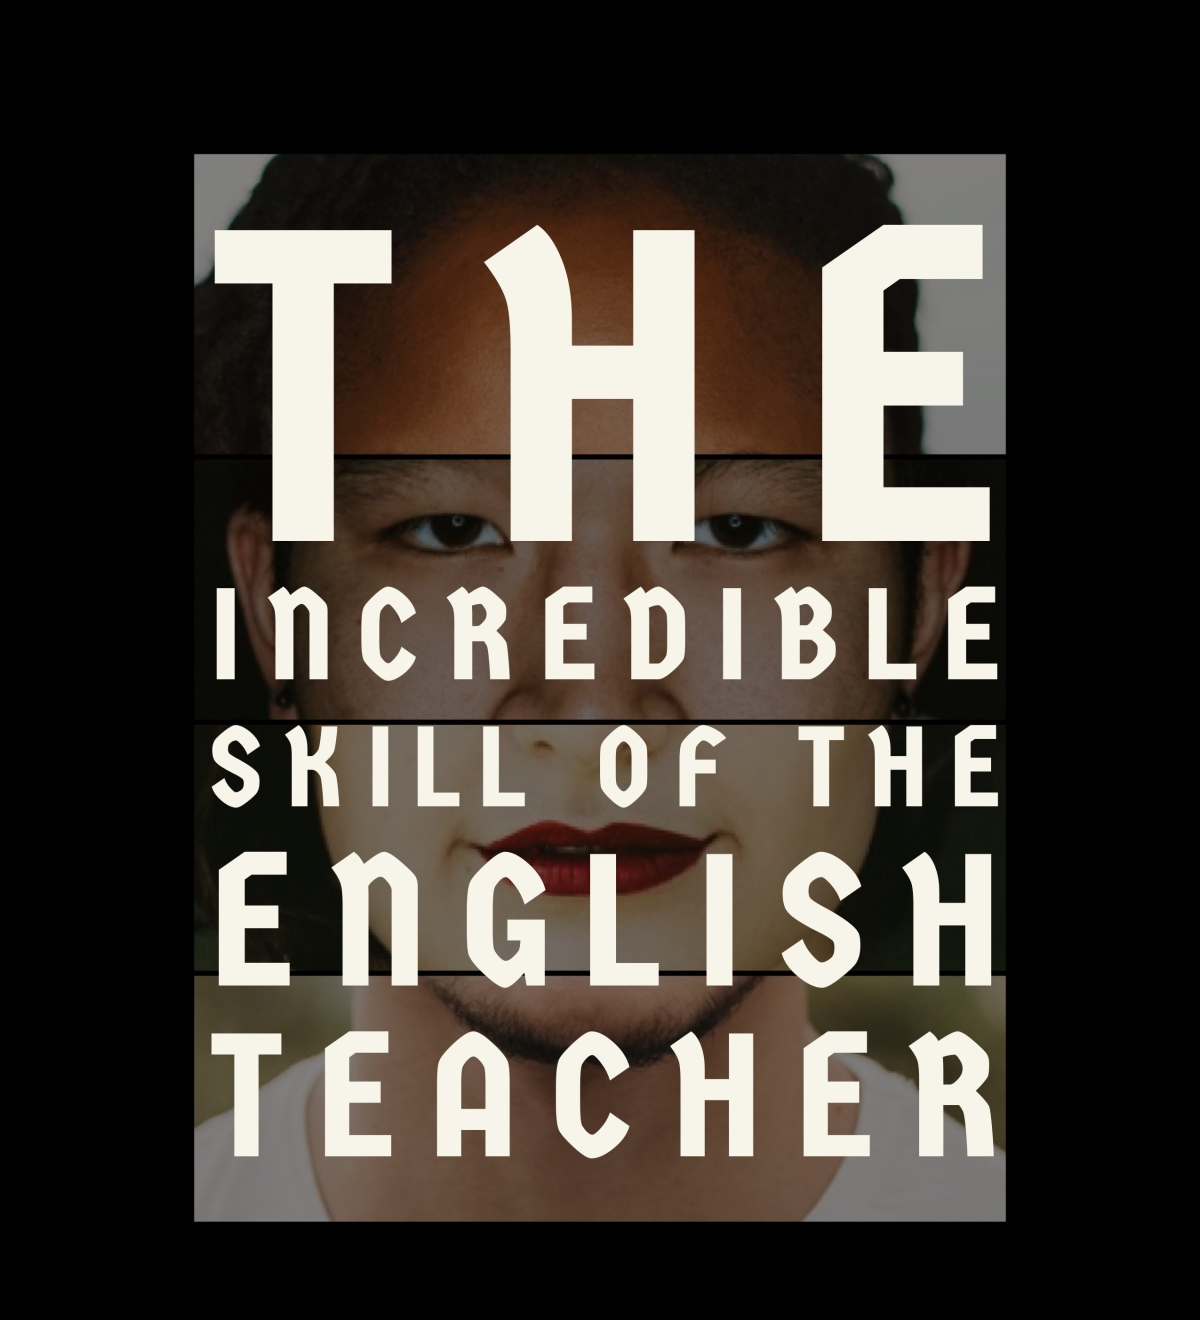 The incredible skill of the English teacher